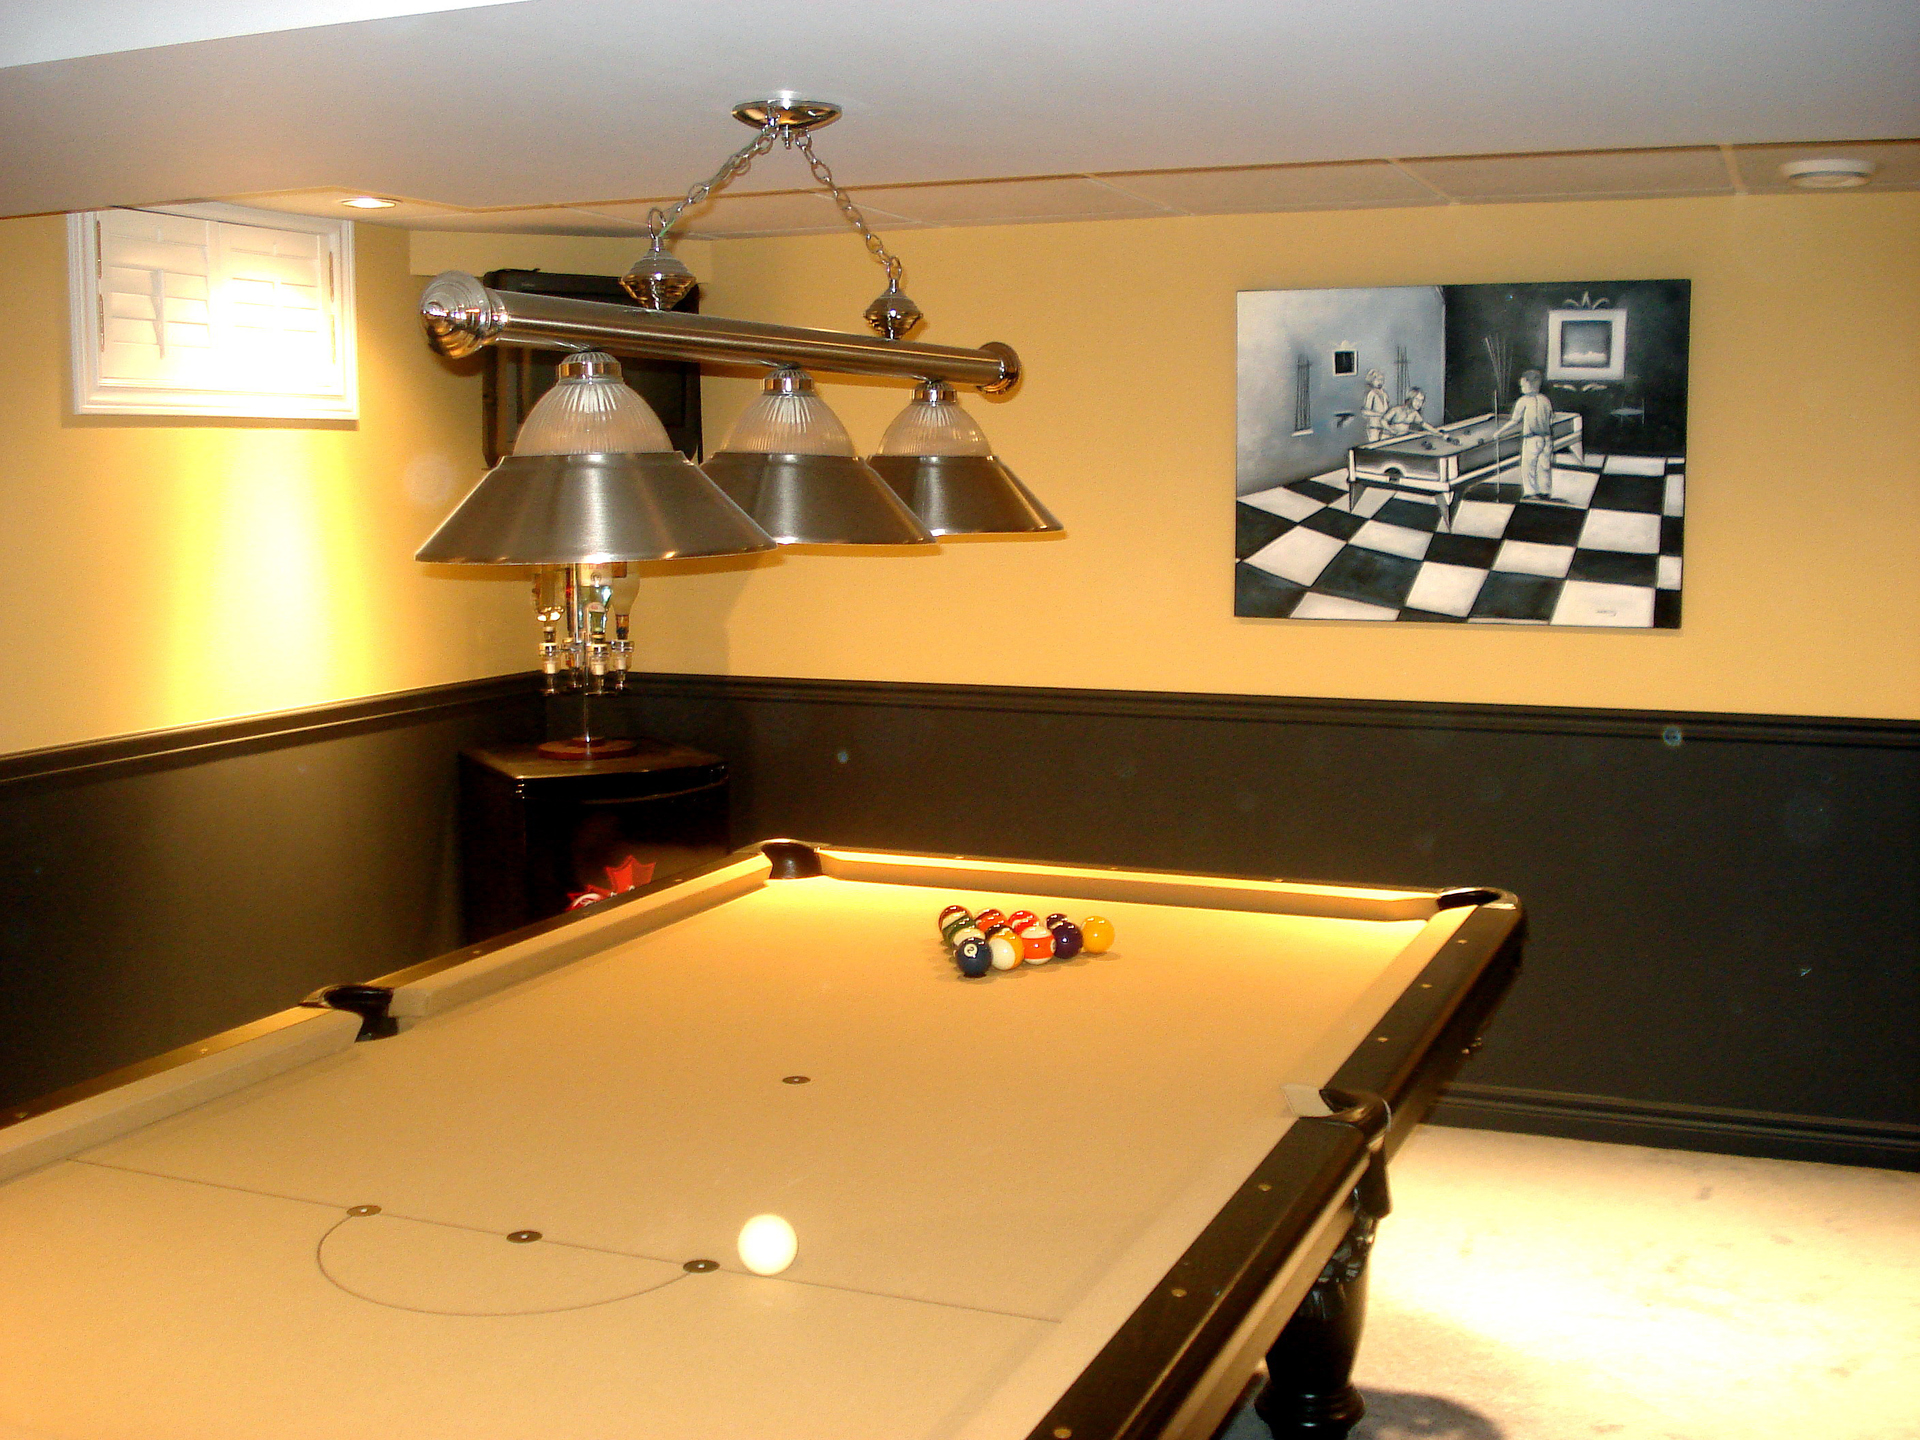 Games Rooms Impressions Painting : pool table and matching walls from impressionspainting.ca size 1920 x 1440 jpeg 2131kB